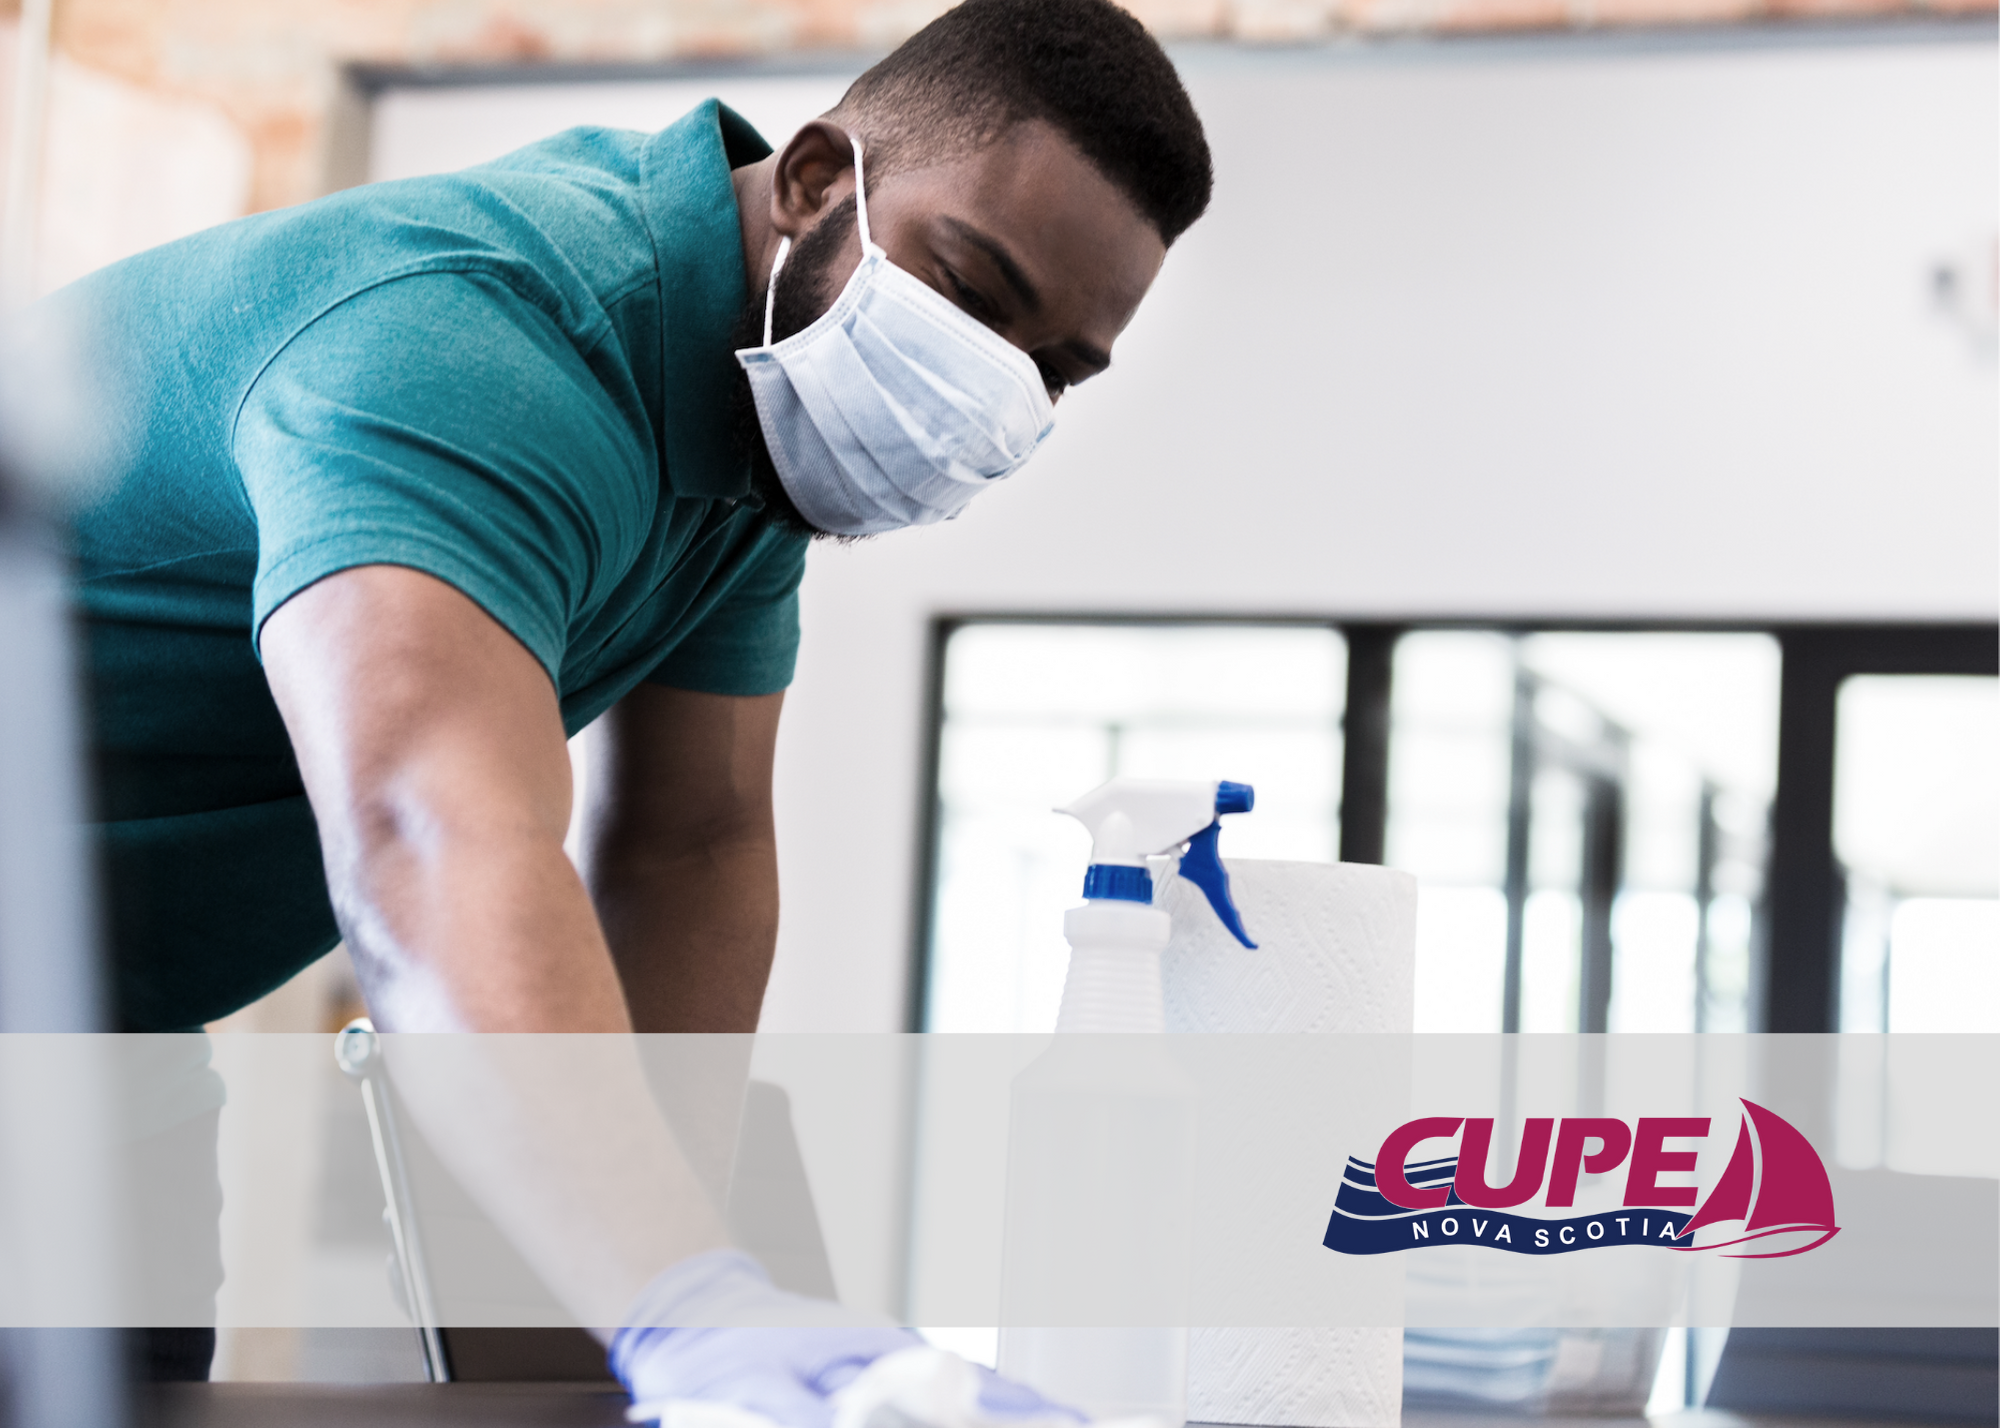 Web banner. Worker cleaning a table. CUPE NS logo.